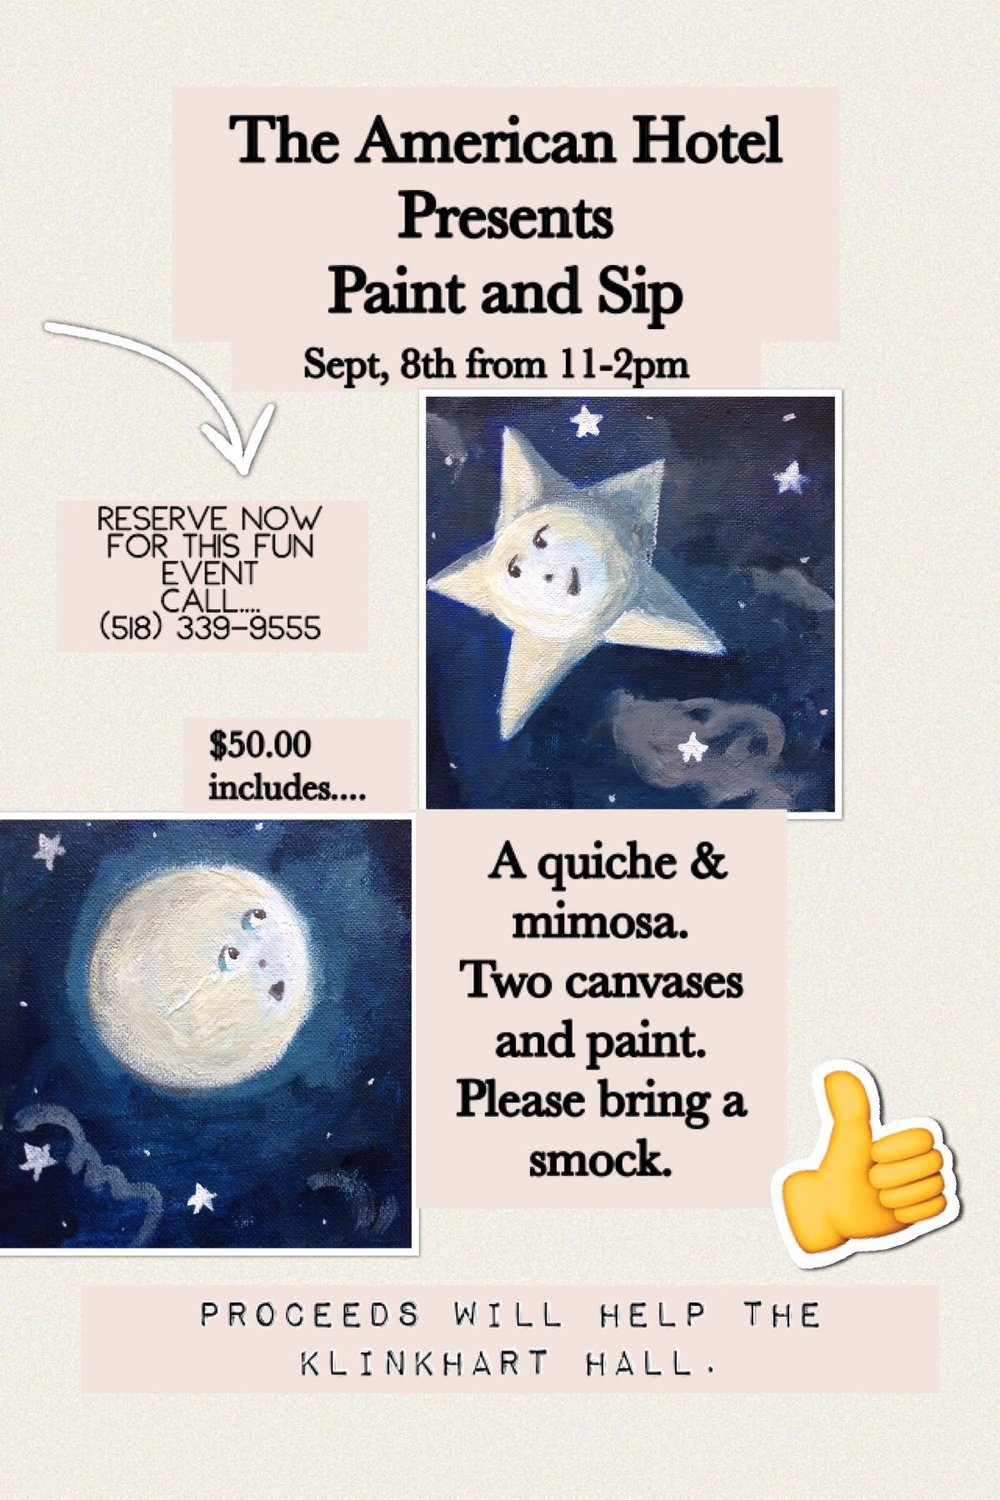 Poster for Paint and Sip event